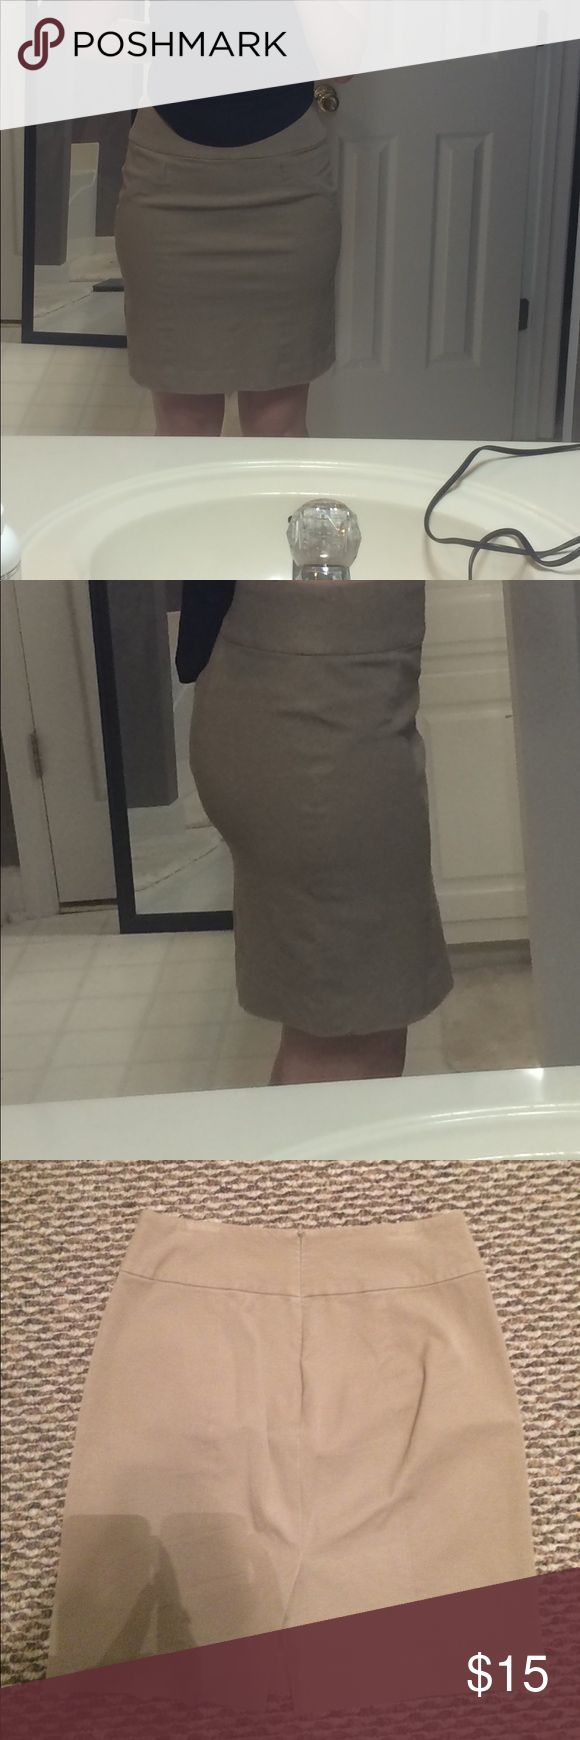 """Banana Republic Khaki Pencil Skirt Size 4 pencil skirt in good condition. No stains. Hits me just above the knee. I am 5'7"""". Banana Republic Skirts Pencil"""